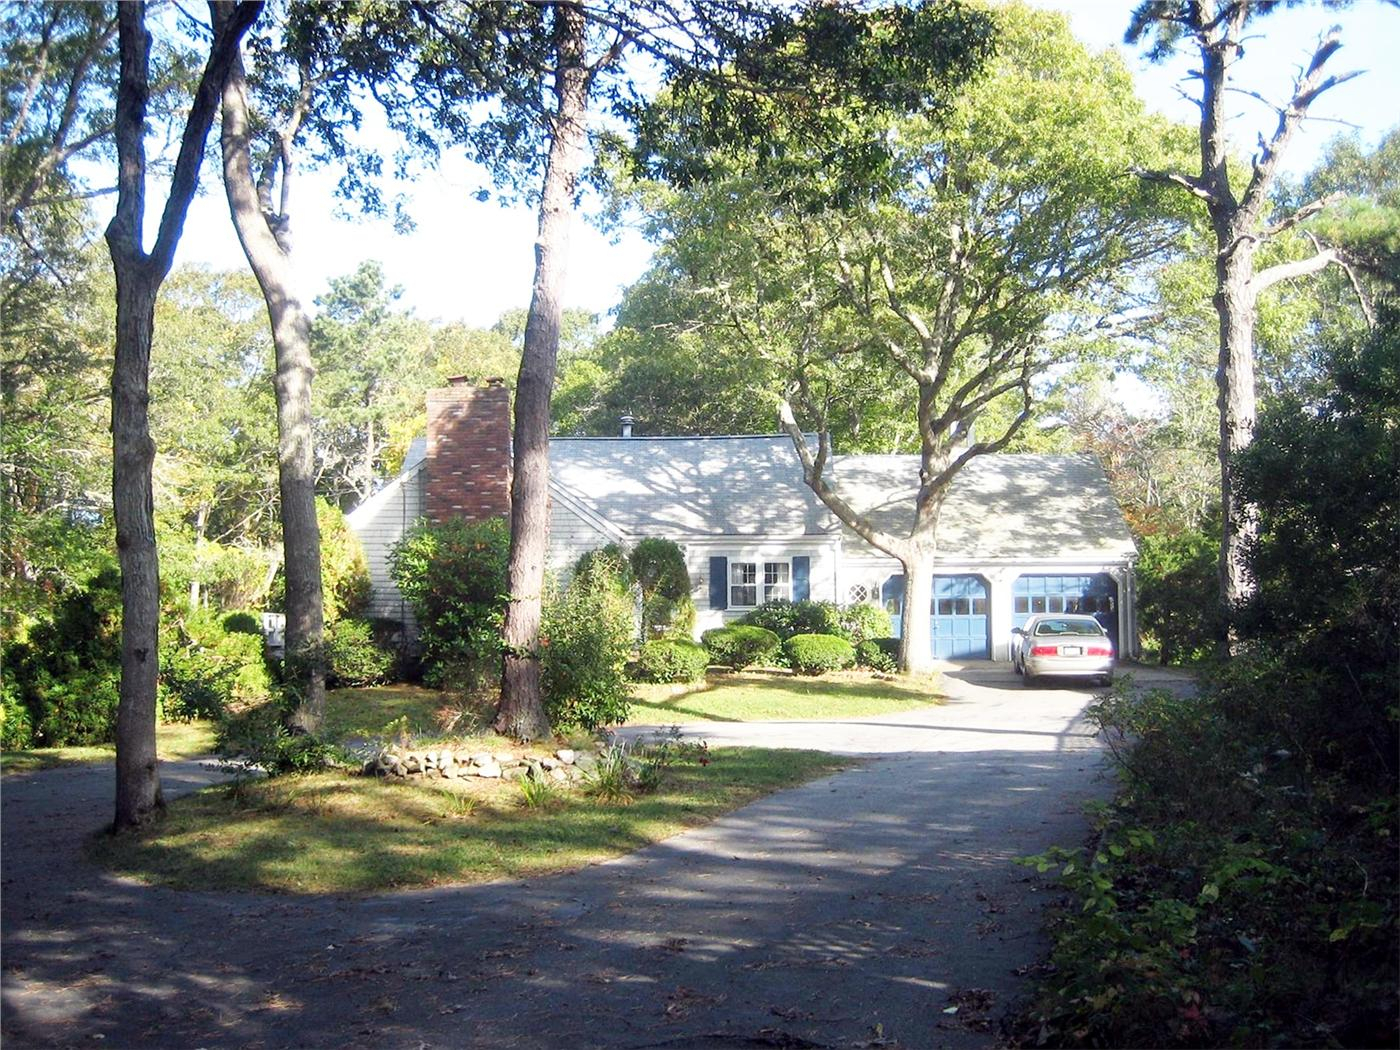 Hyannis Vacation Rental Home In Cape Cod Ma 02672 1/4